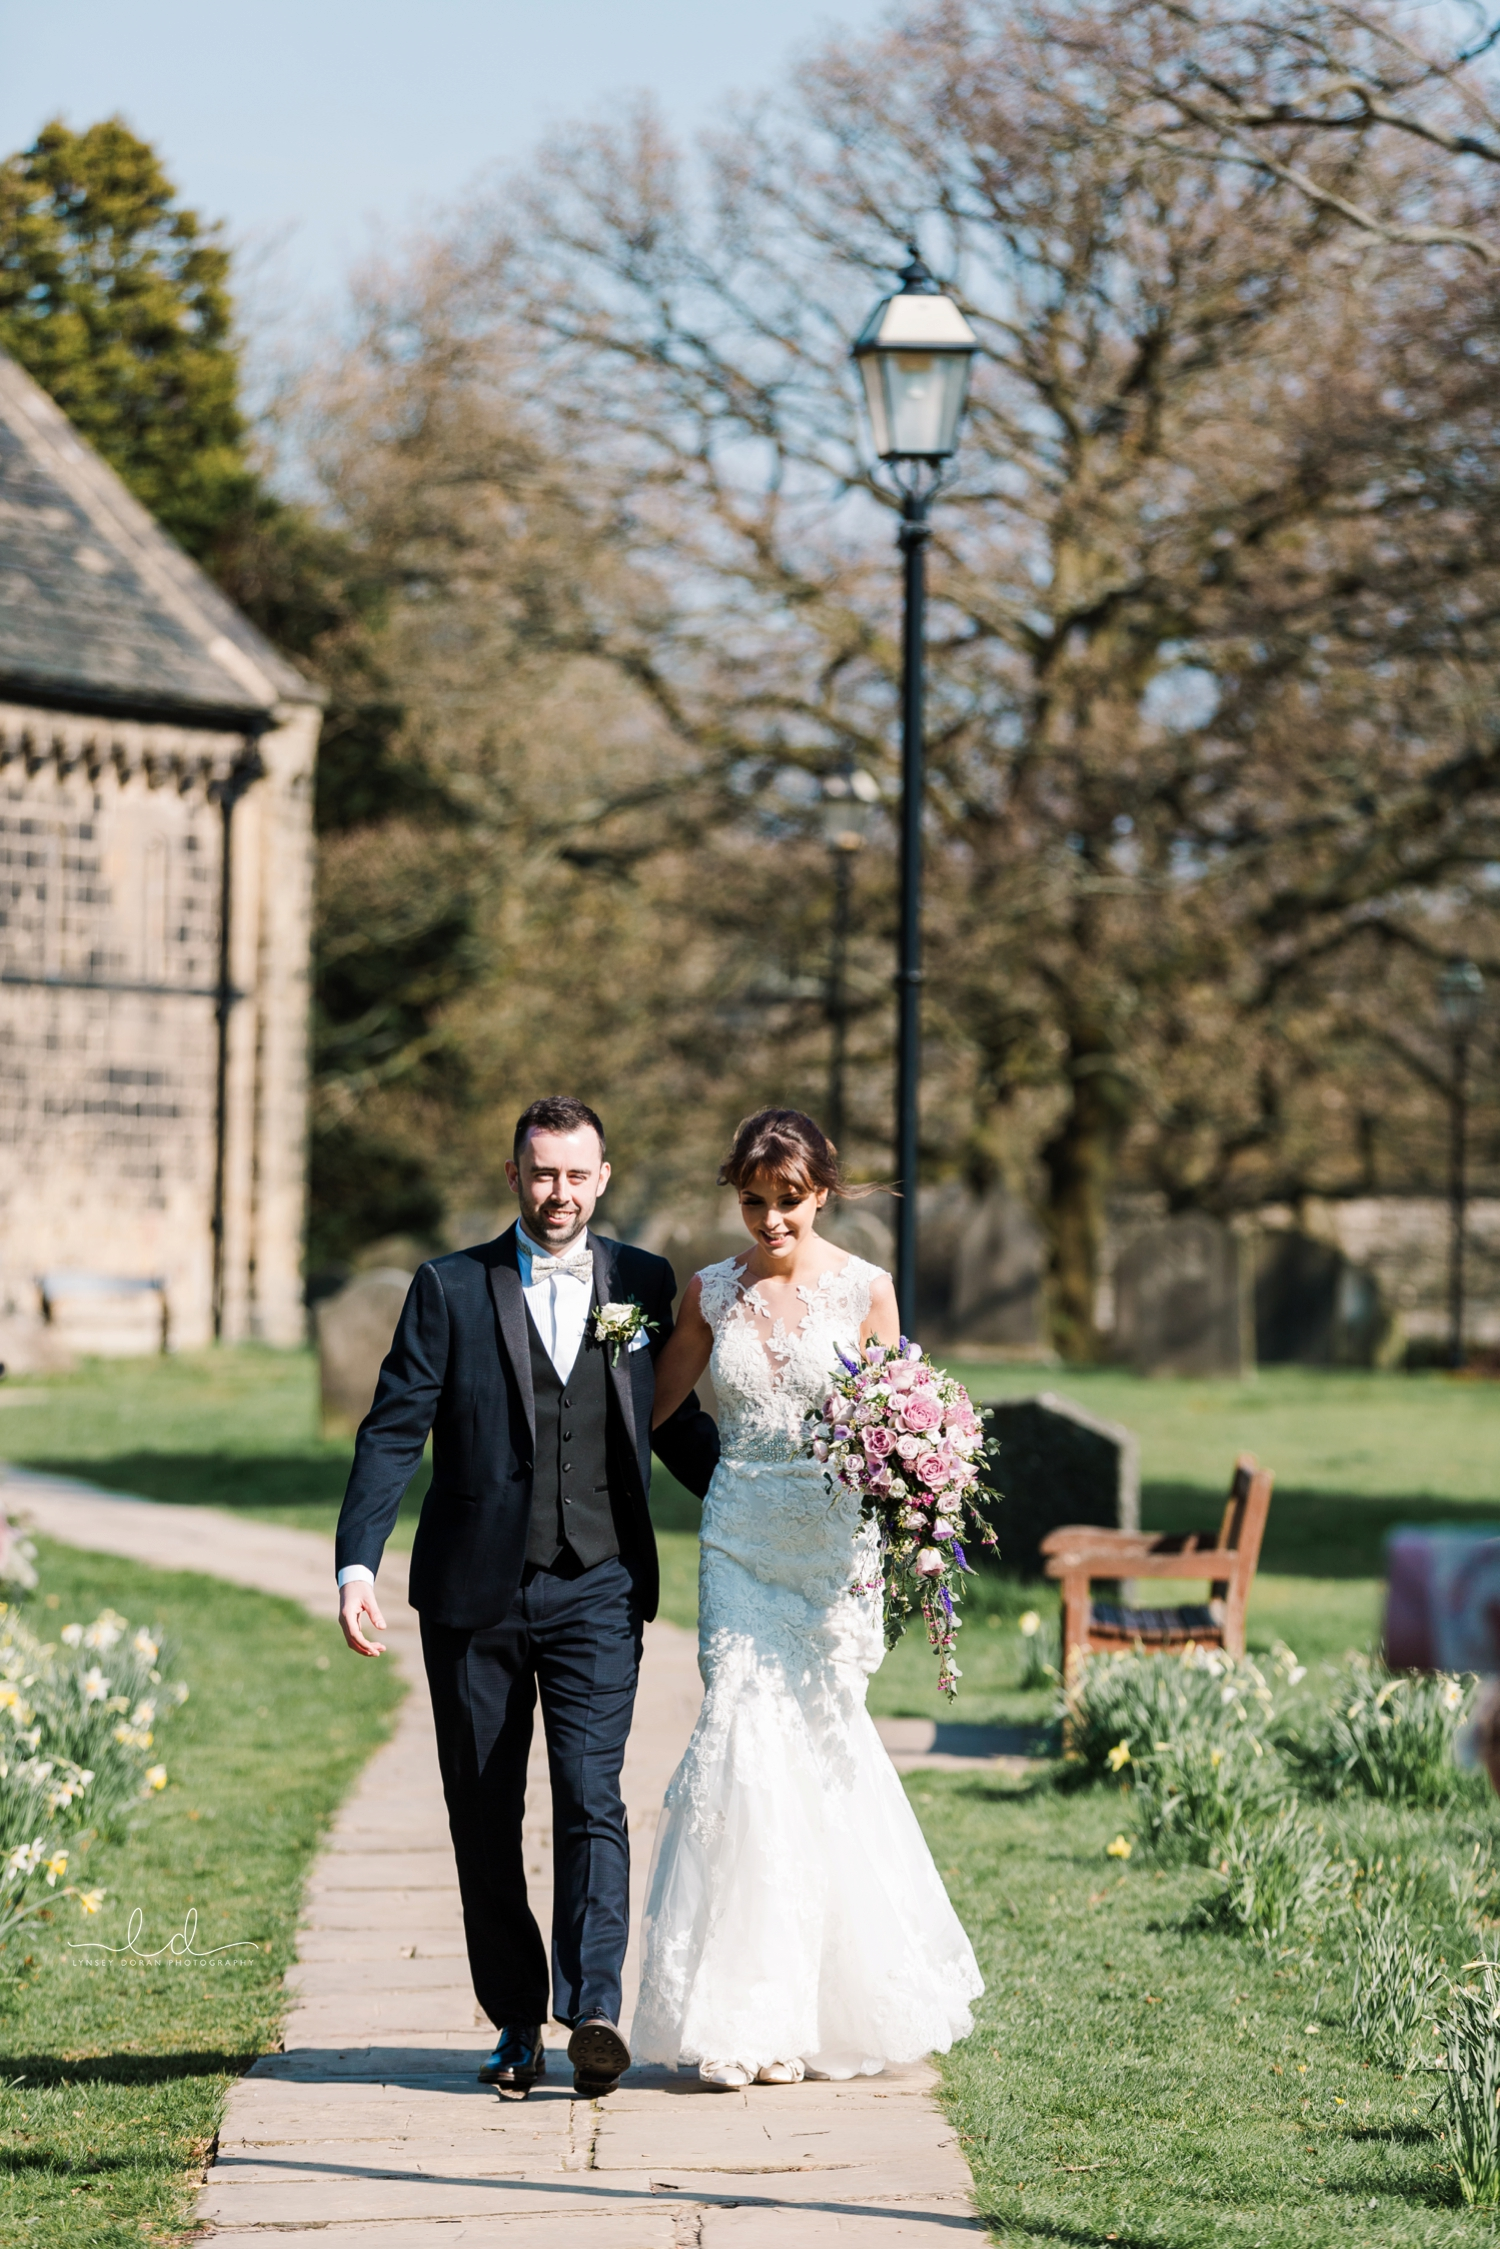 Weddings at Wharfedale Grange